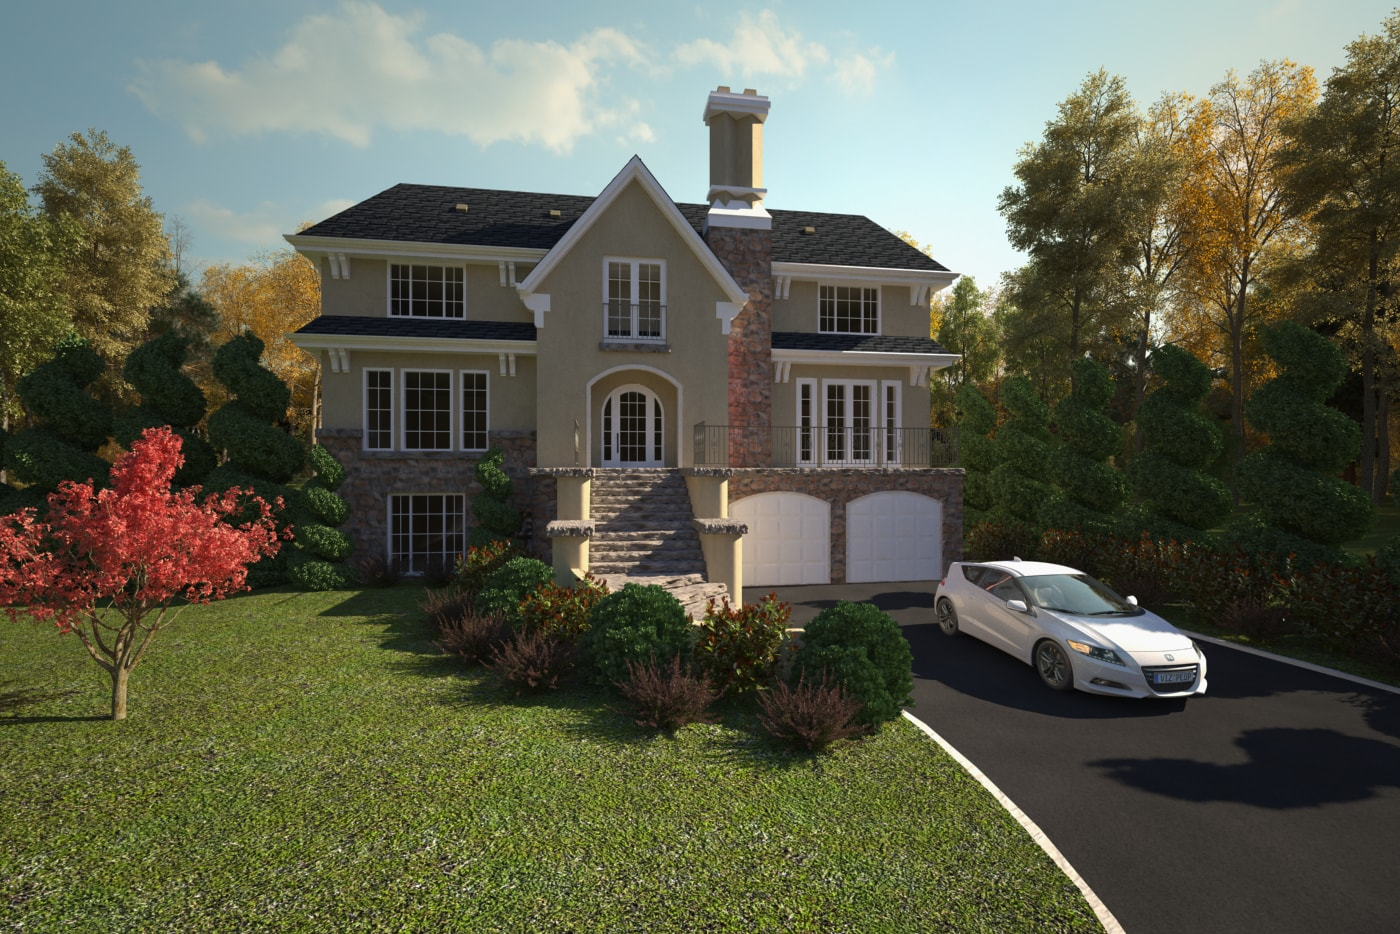 Renders - Three Storey House - Front View - AutoCAD - Render - 3D Visualization